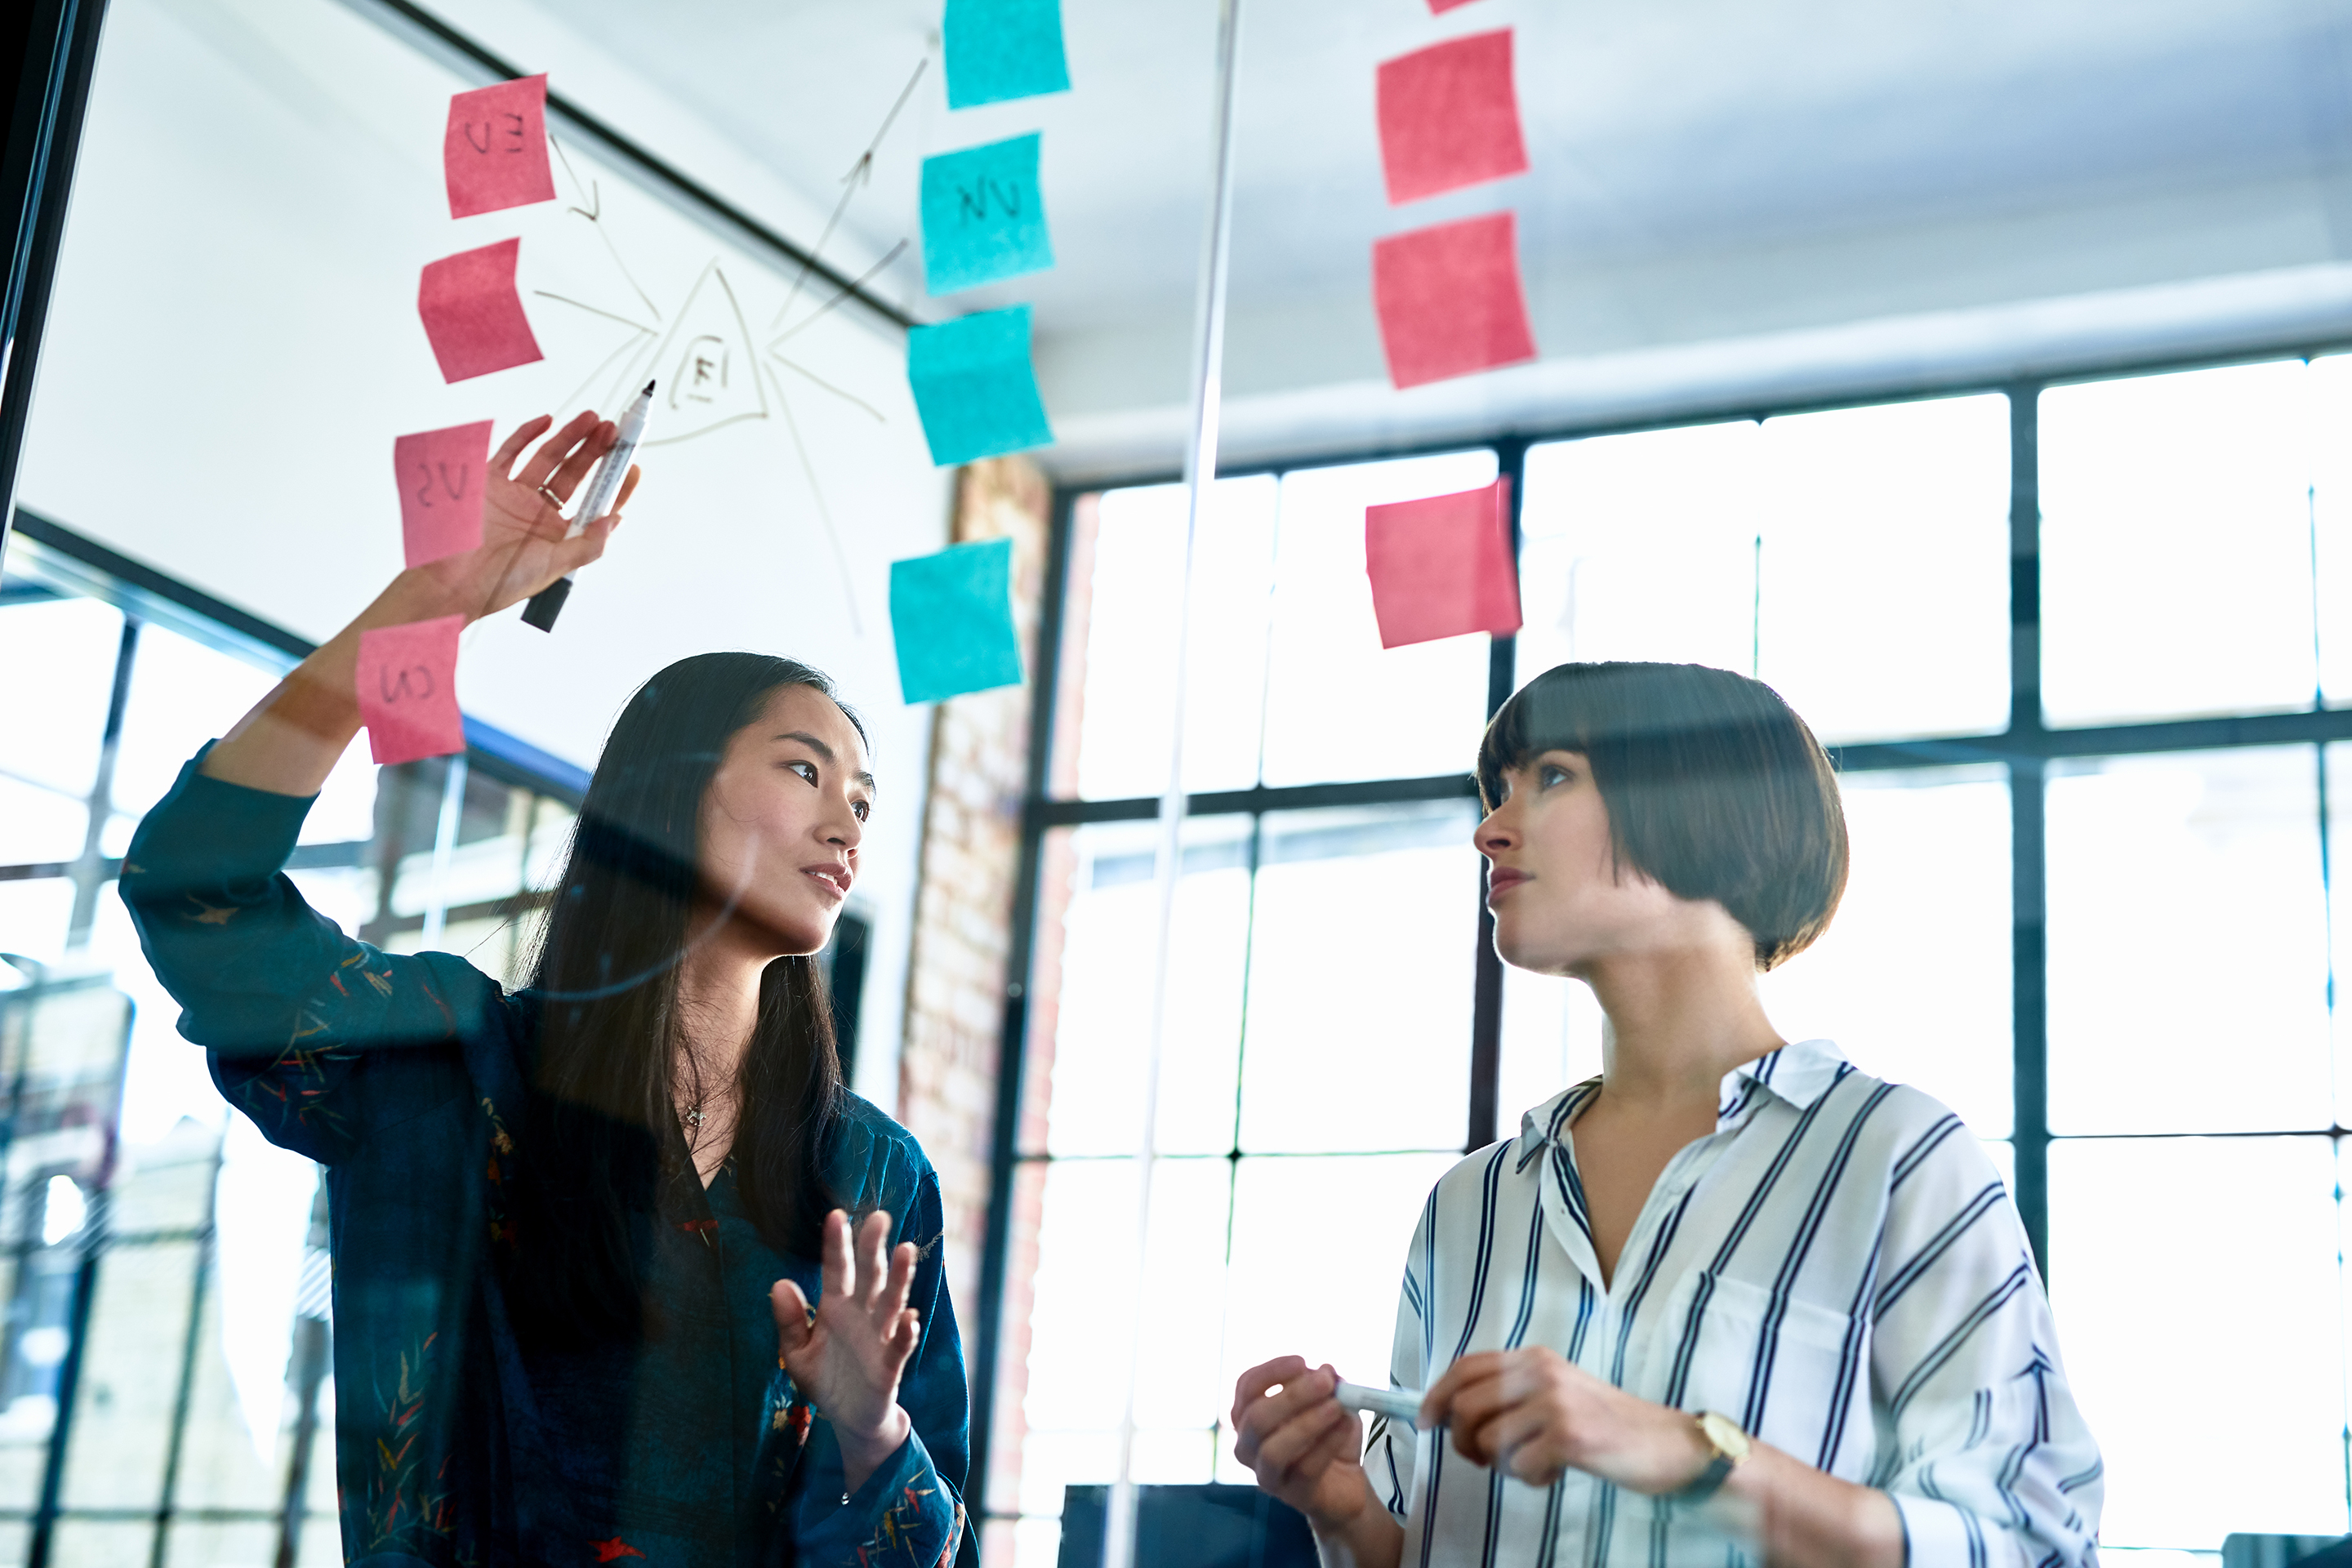 Career coach versus mentor: Which do you need?